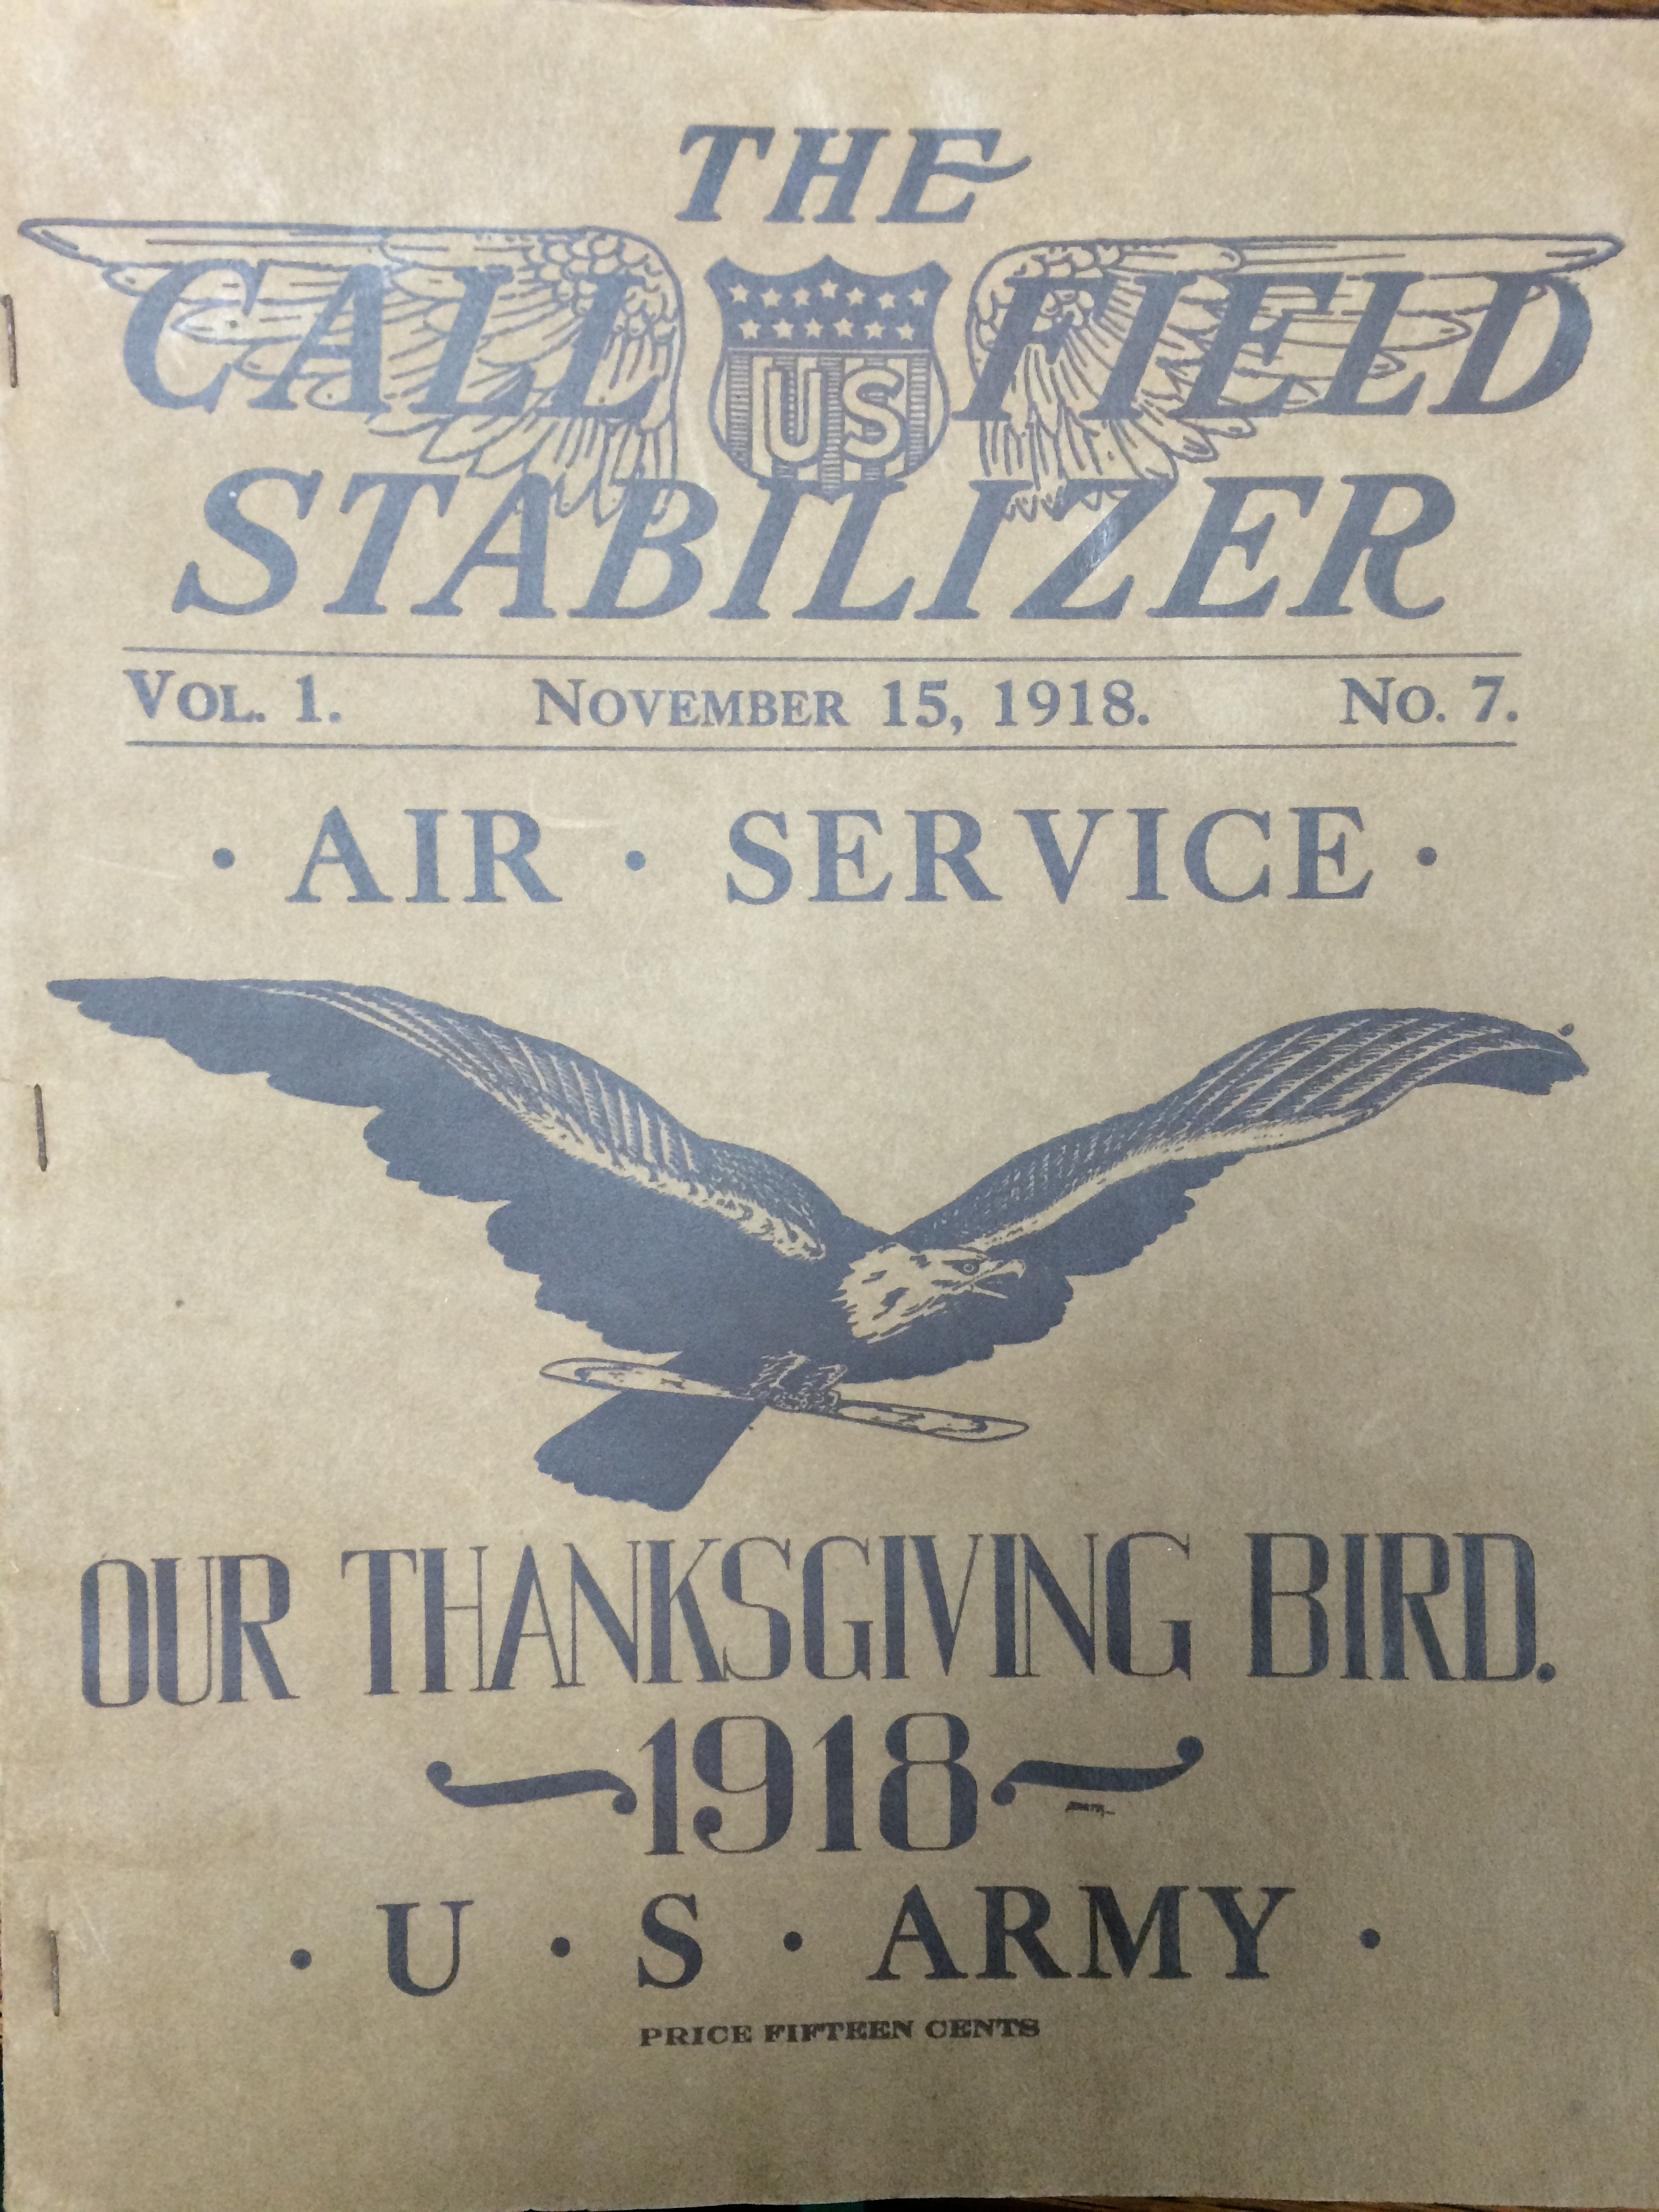 Image 1 November 15, 1918 Call Field Stabilizer